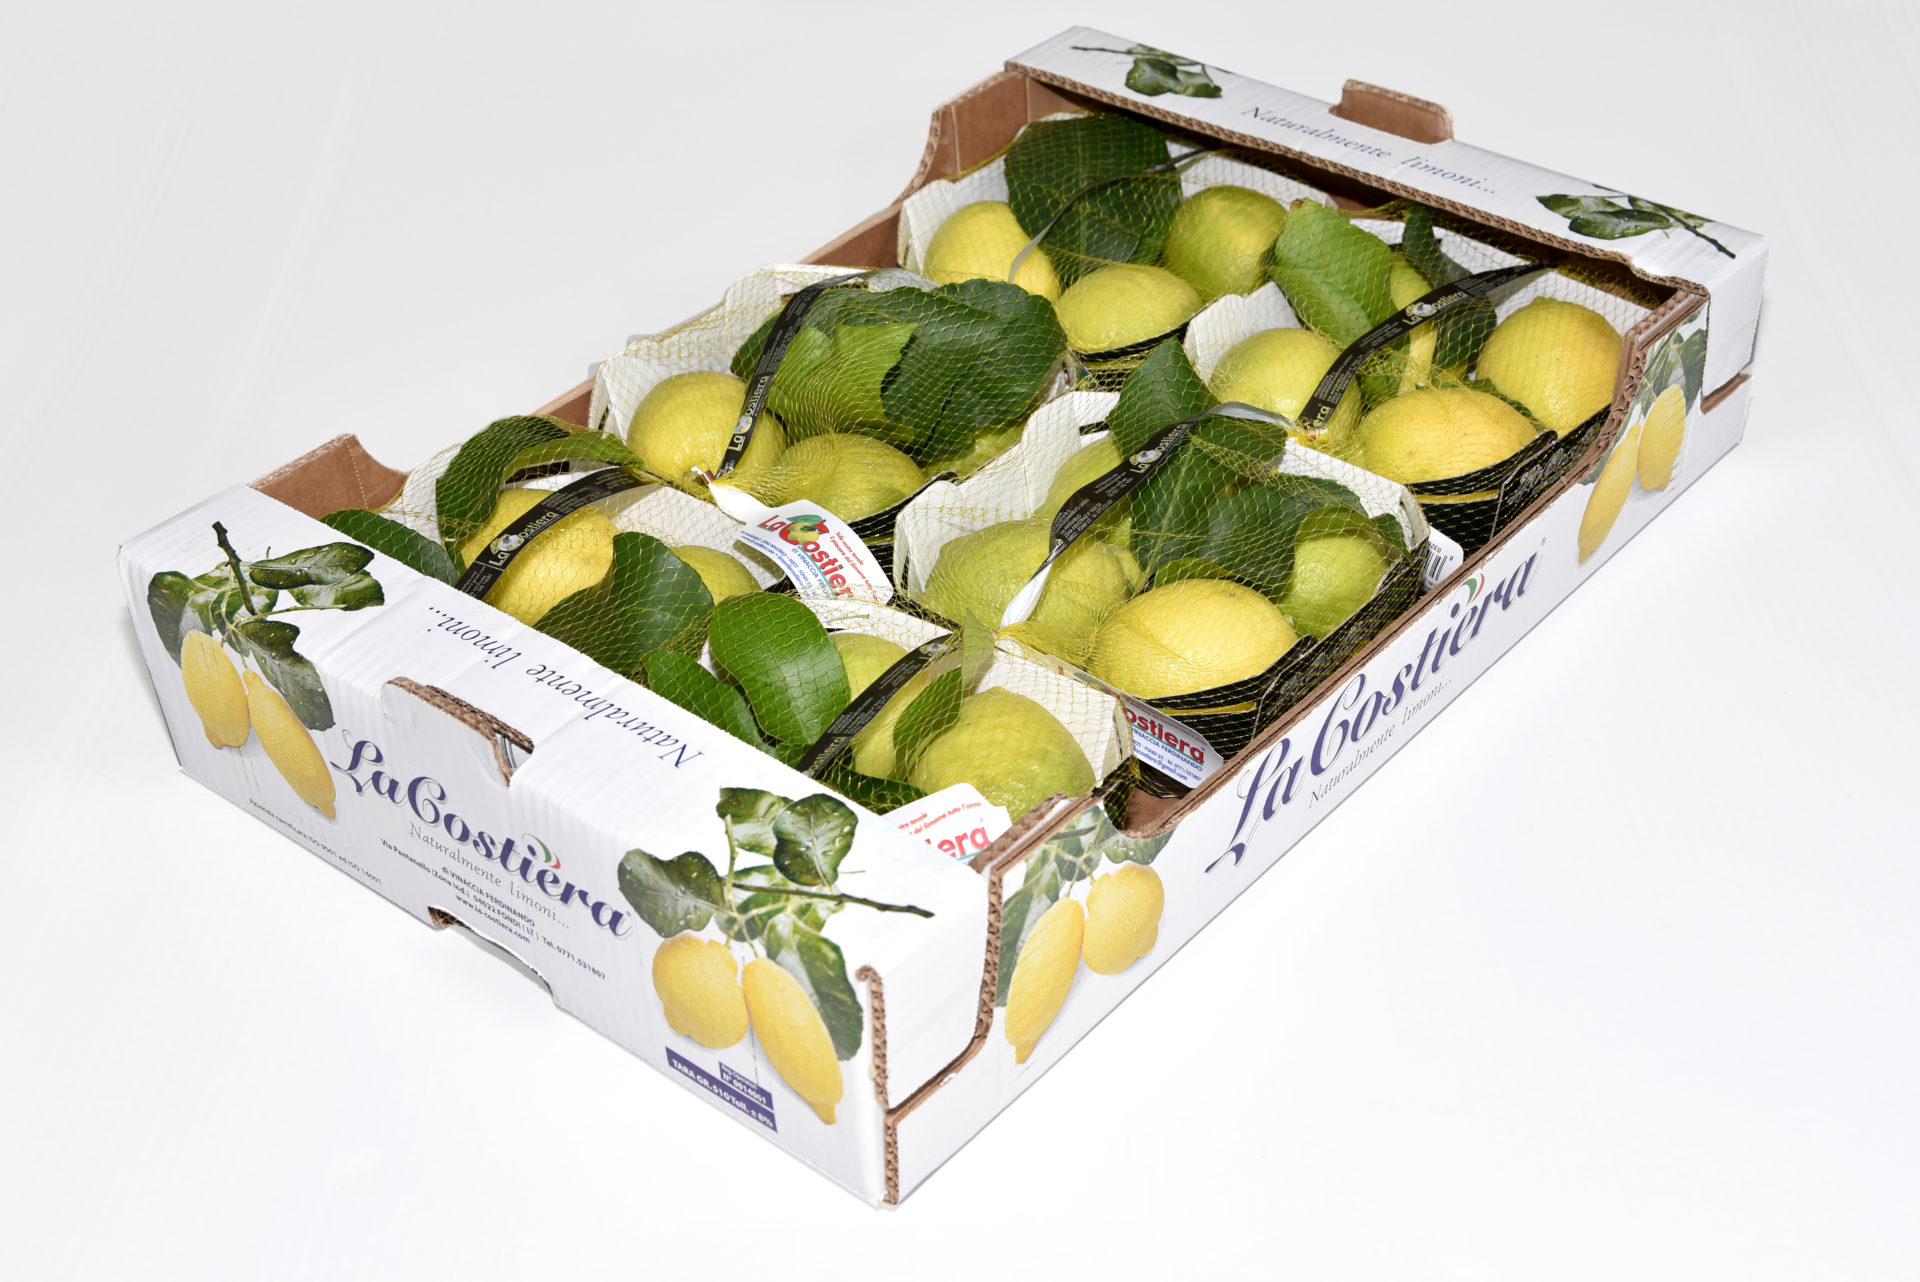 Lemon Primo Fiore leaf caliber 3 category 1 4,8Kg